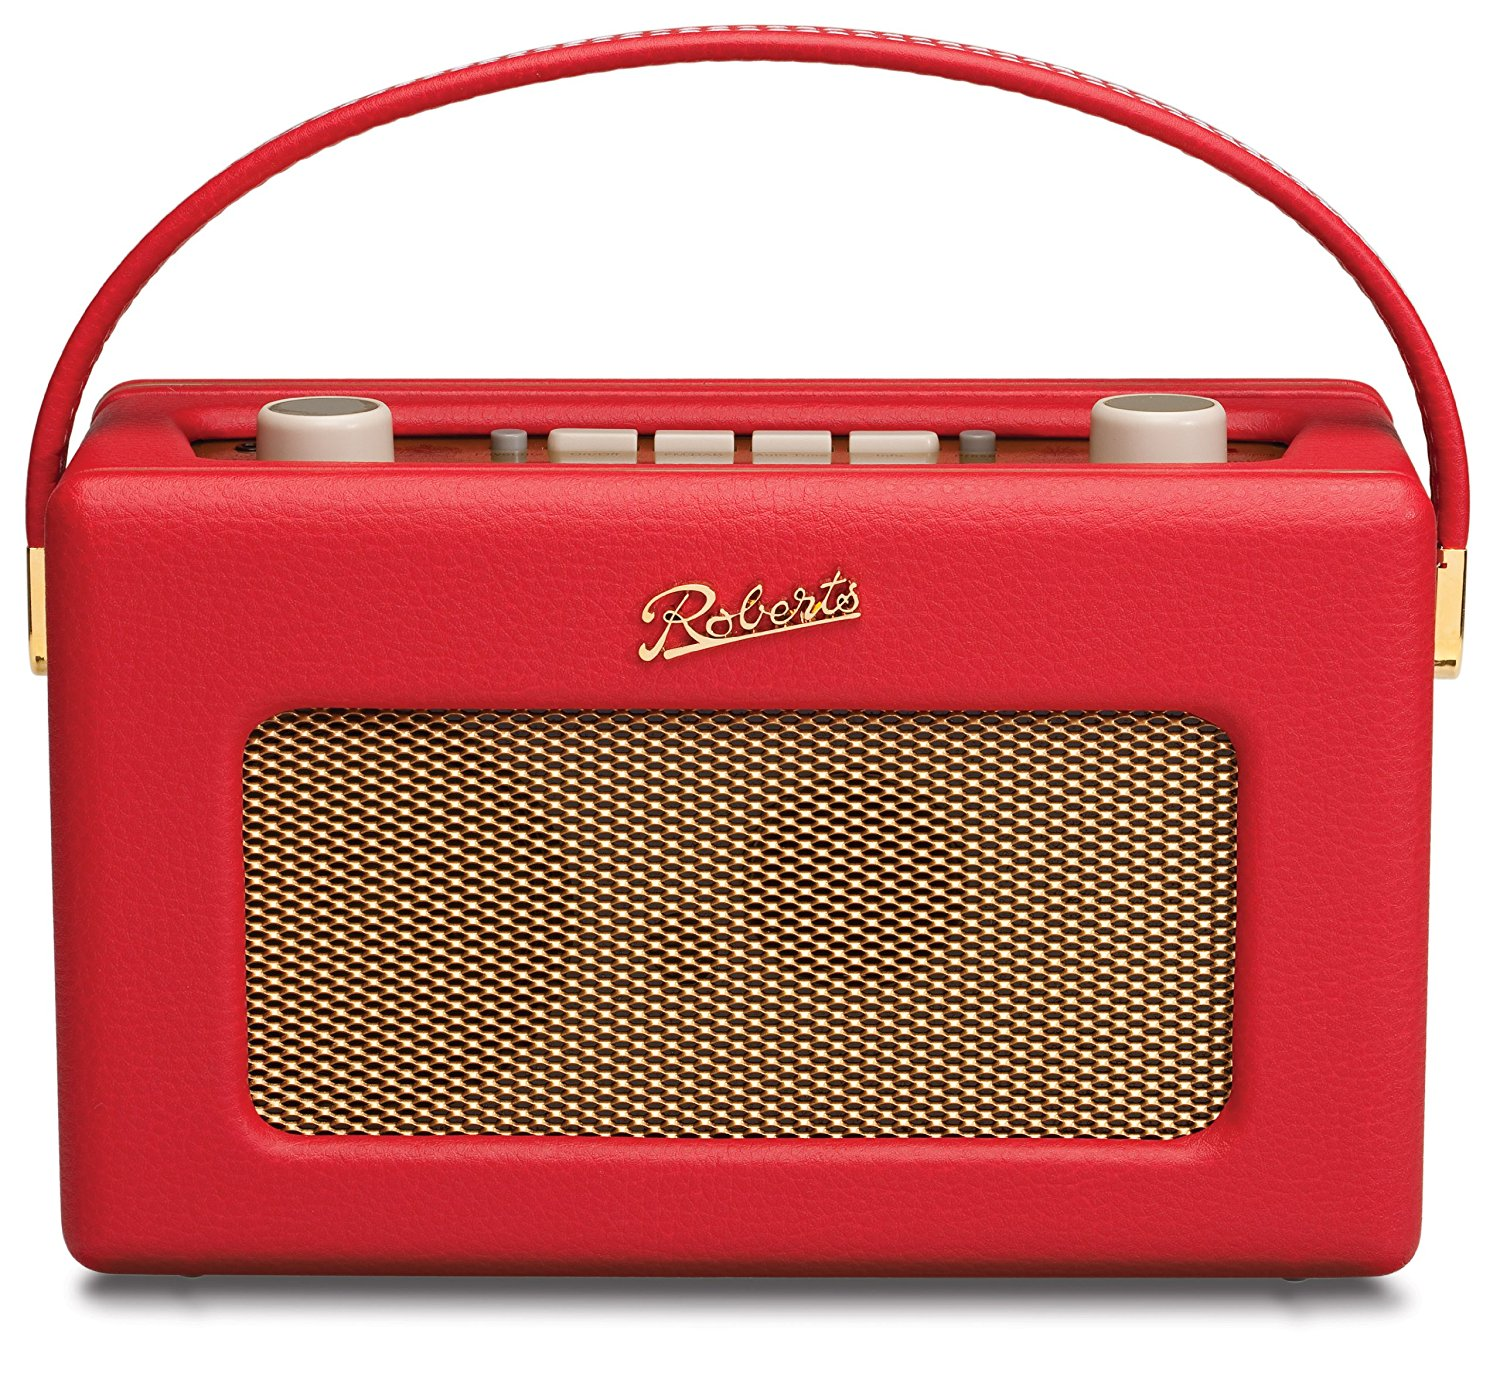 Roberts Revival RD60 DAB/Digital Radio